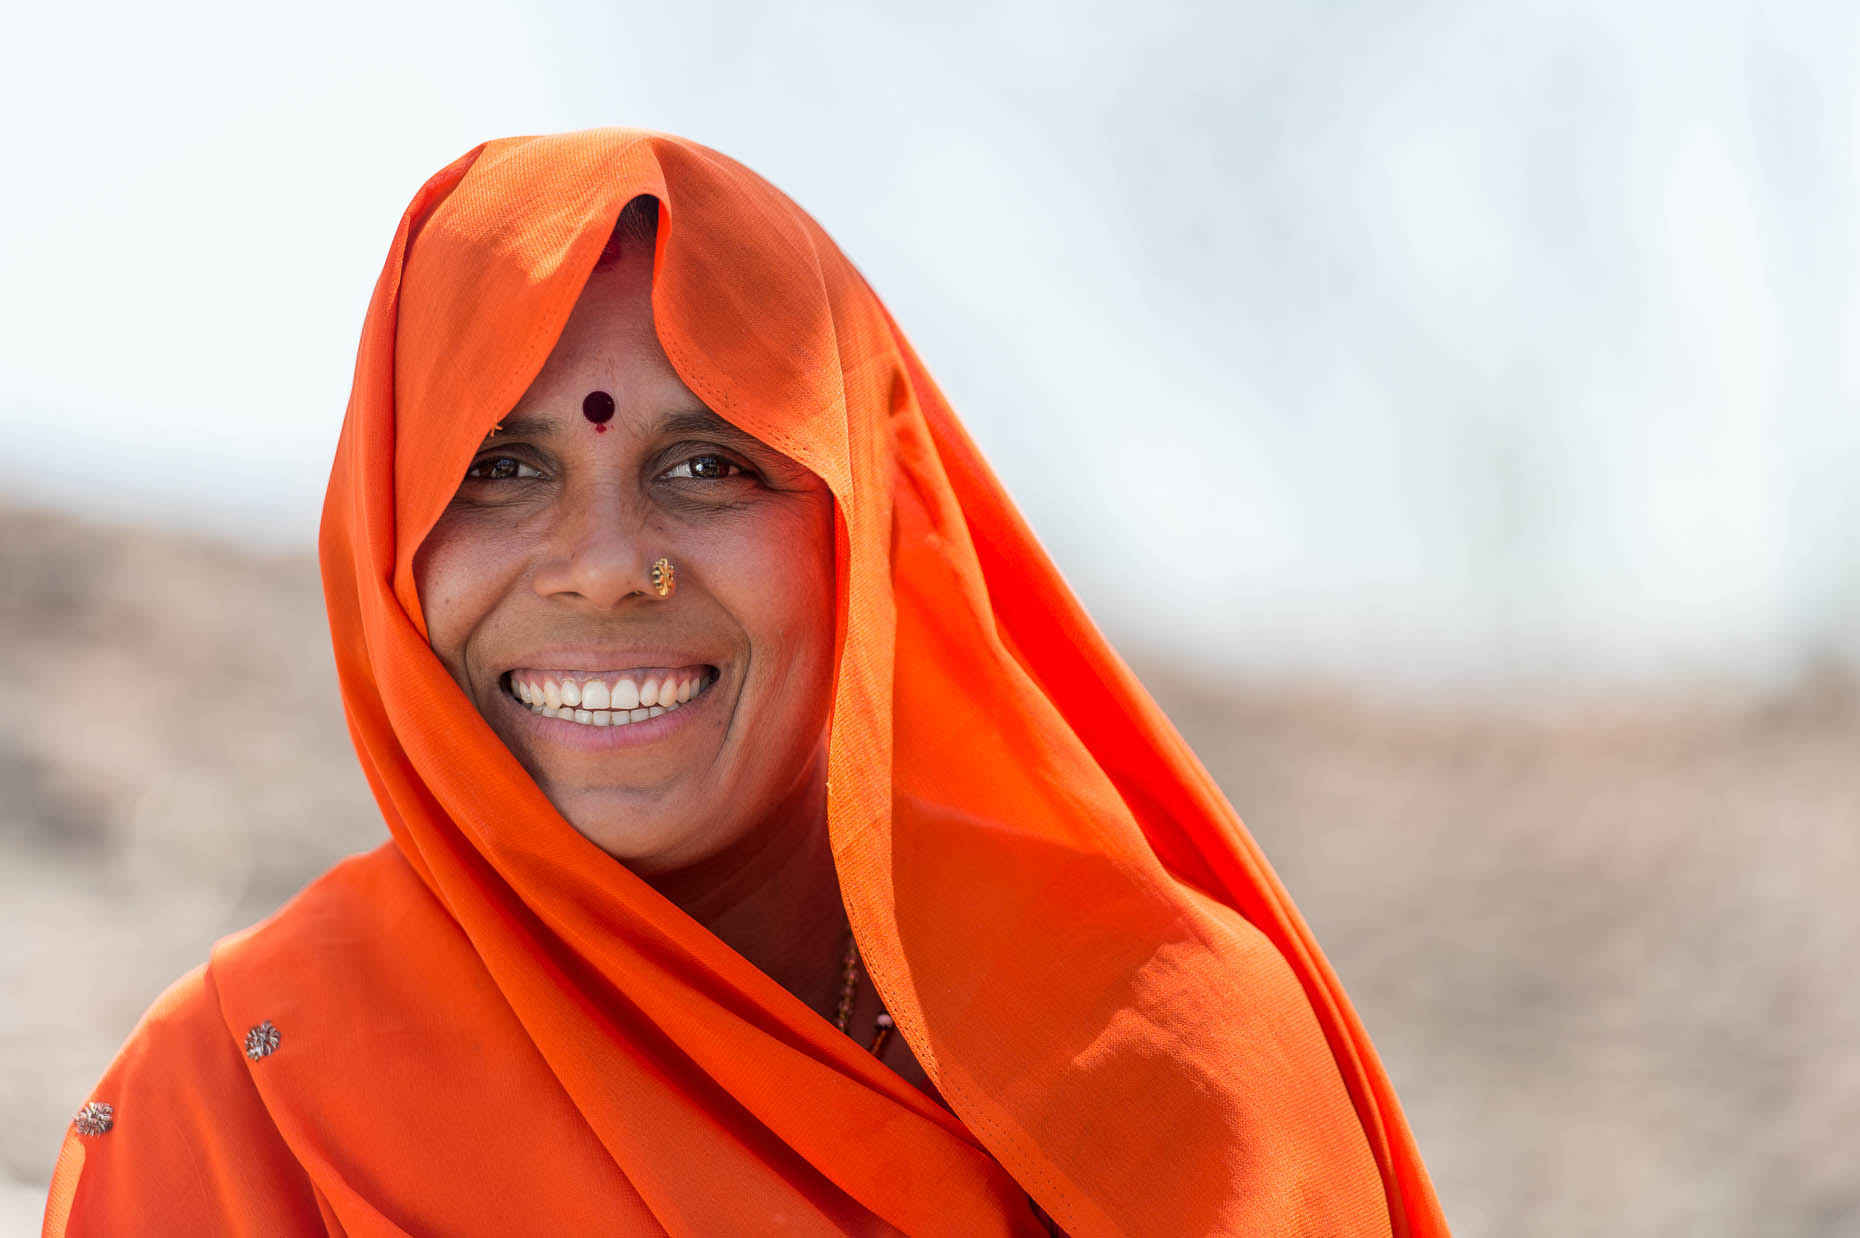 Smiling-woman-India